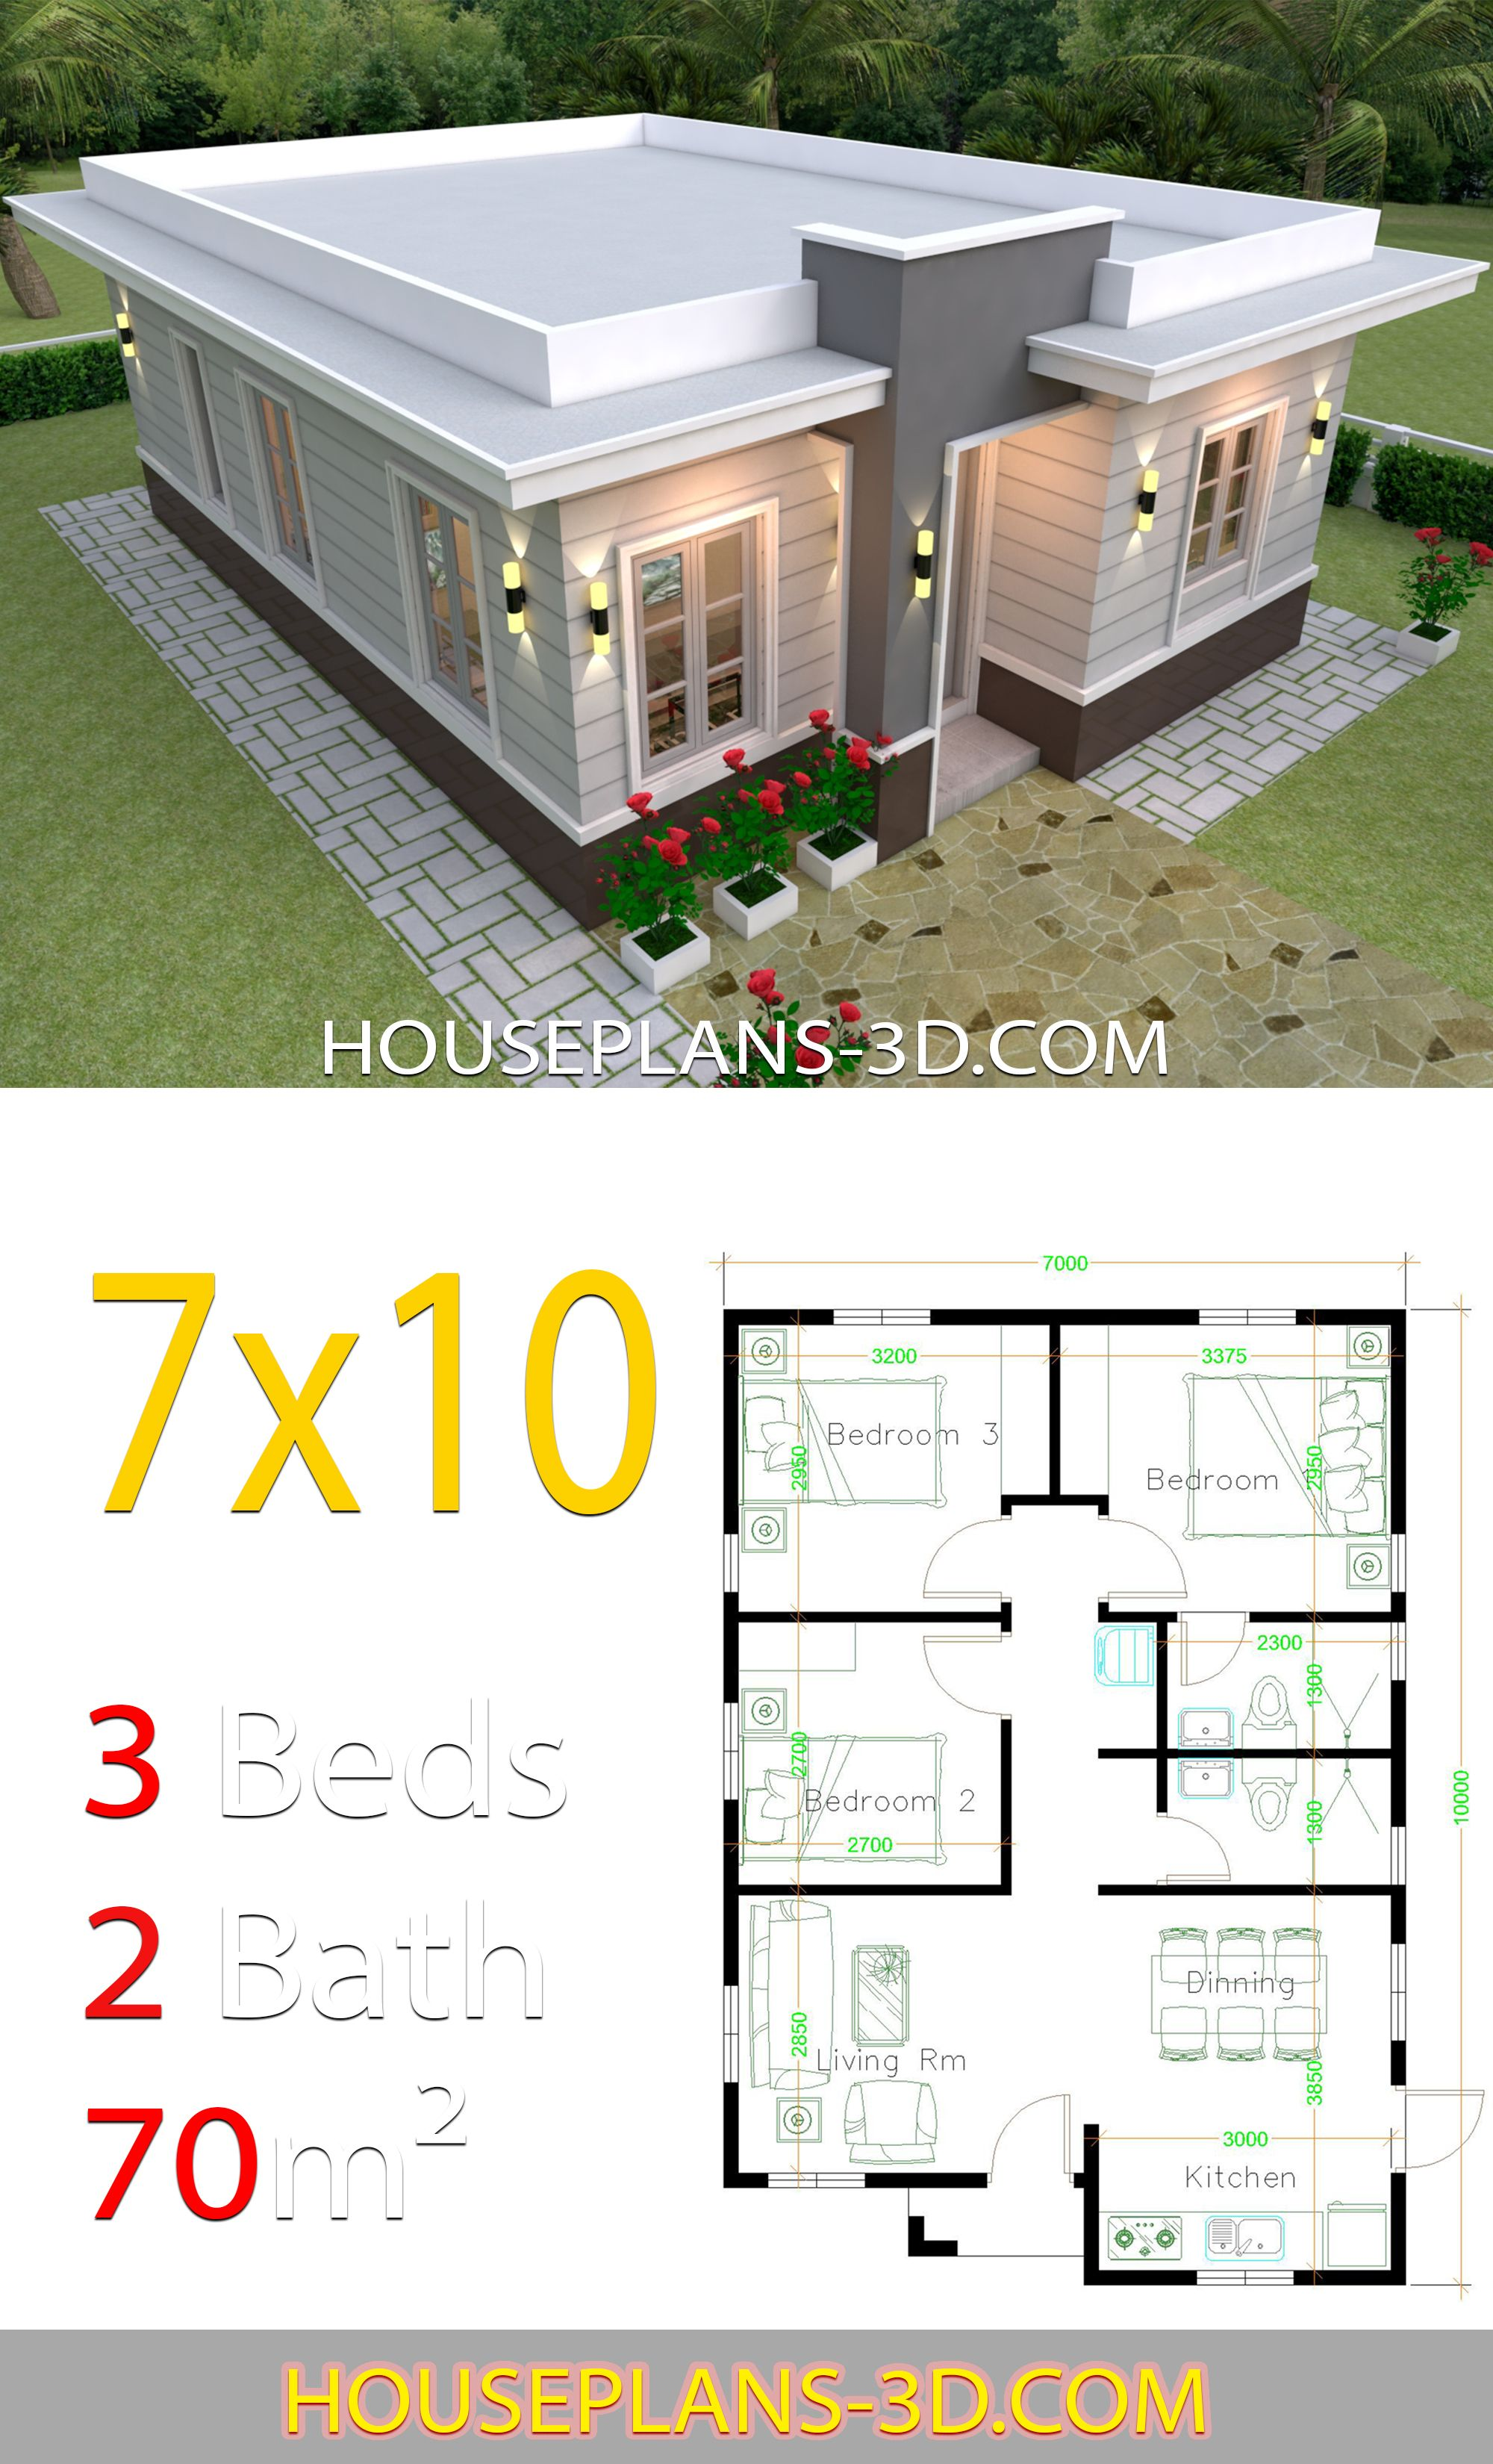 House Design 7x10 With 3 Bedrooms Terrace Roof Architectural House Plans Simple House Design Three Bedroom House Plan